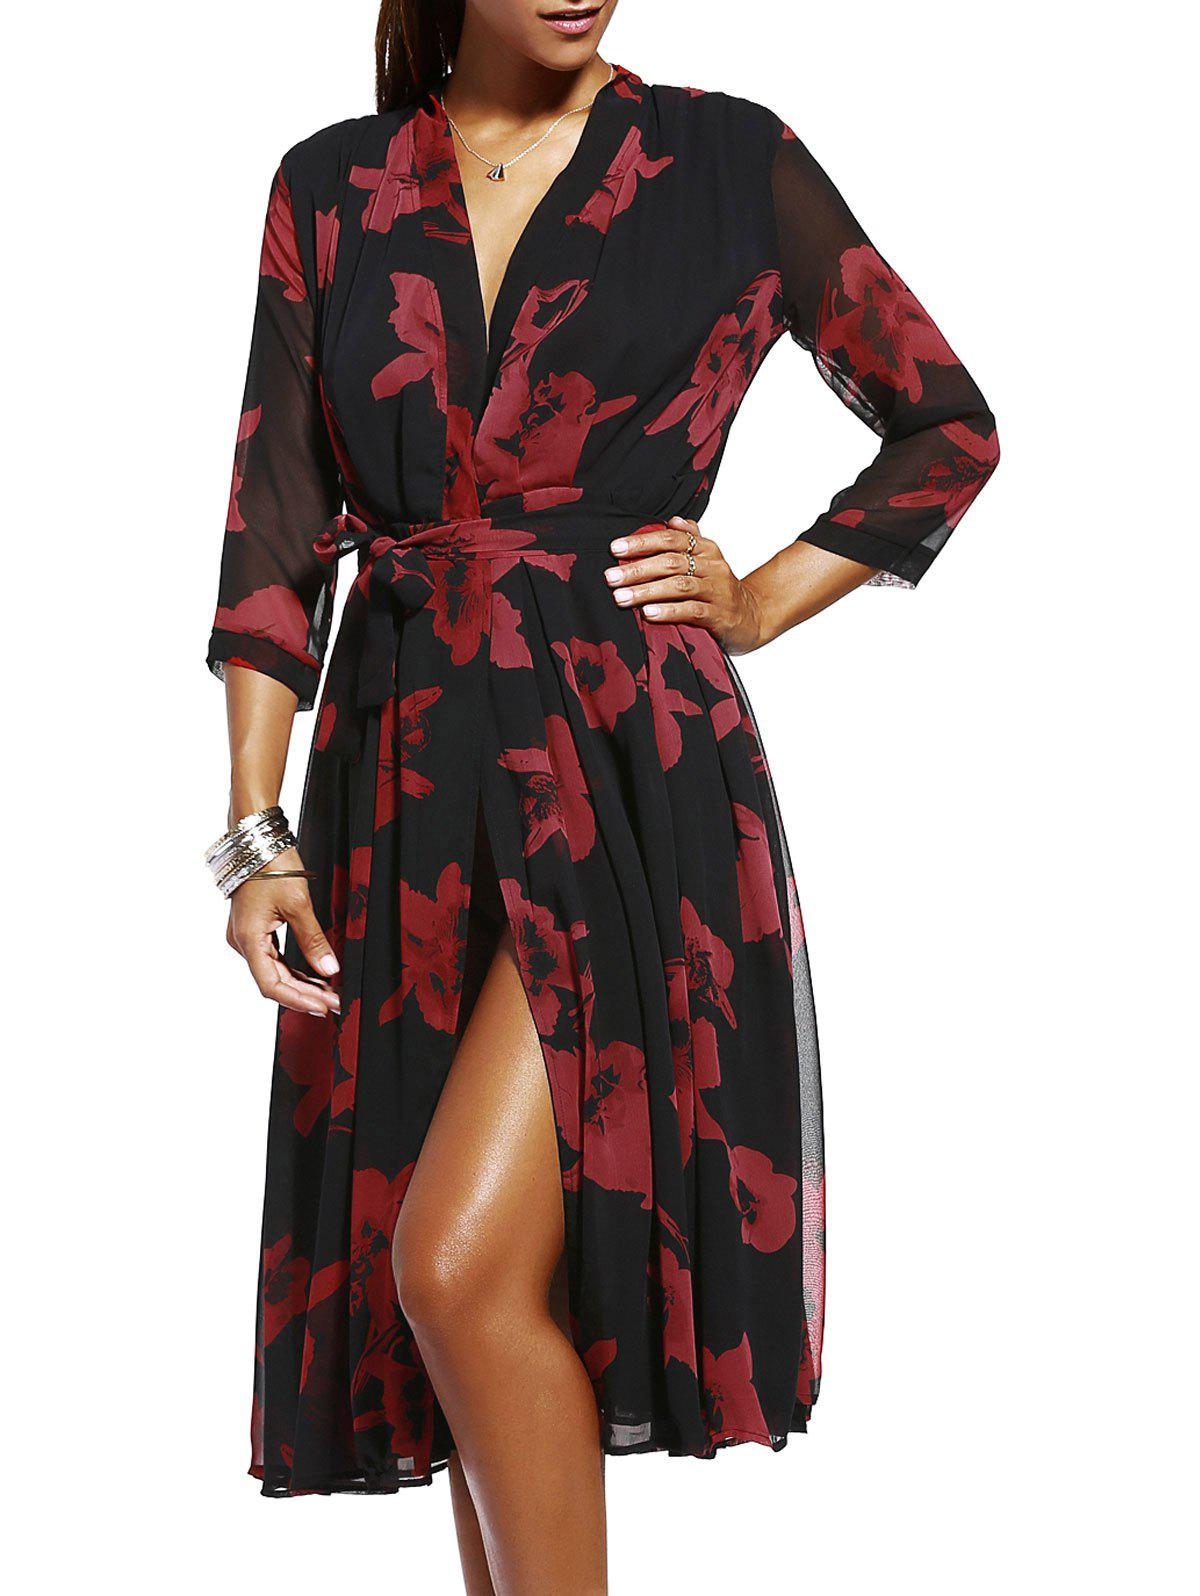 Chic Tie-Front Floral Print Women's Kimono Dress - RED ONE SIZE(FIT SIZE XS TO M)